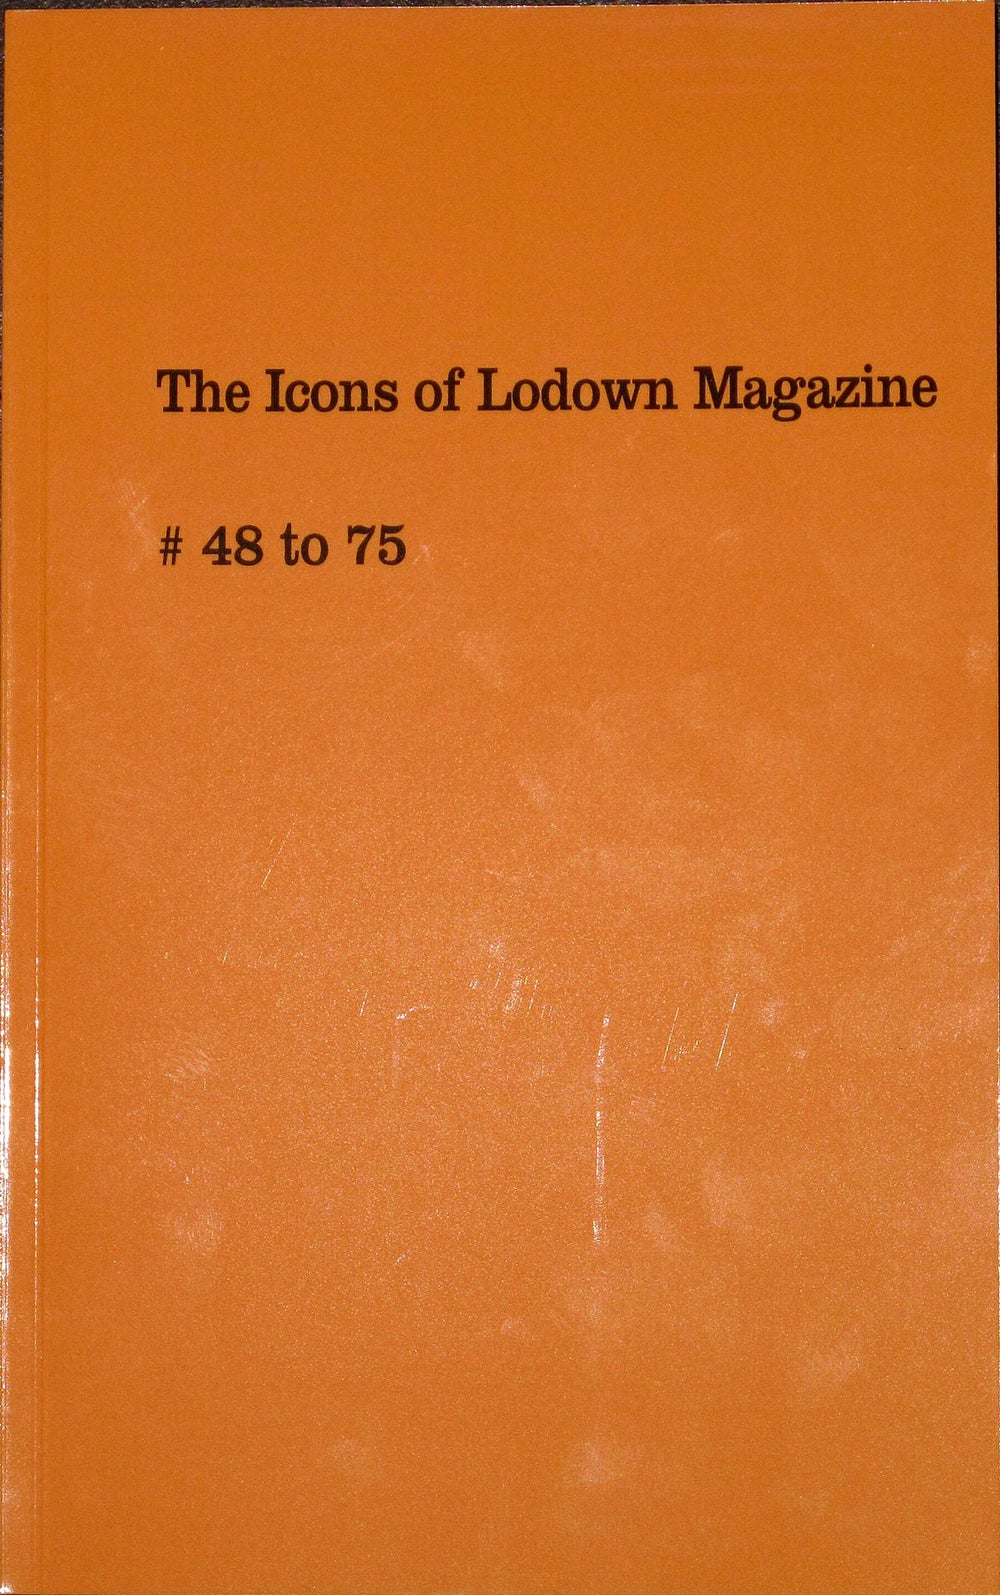 The Icons of Lodown Magazine